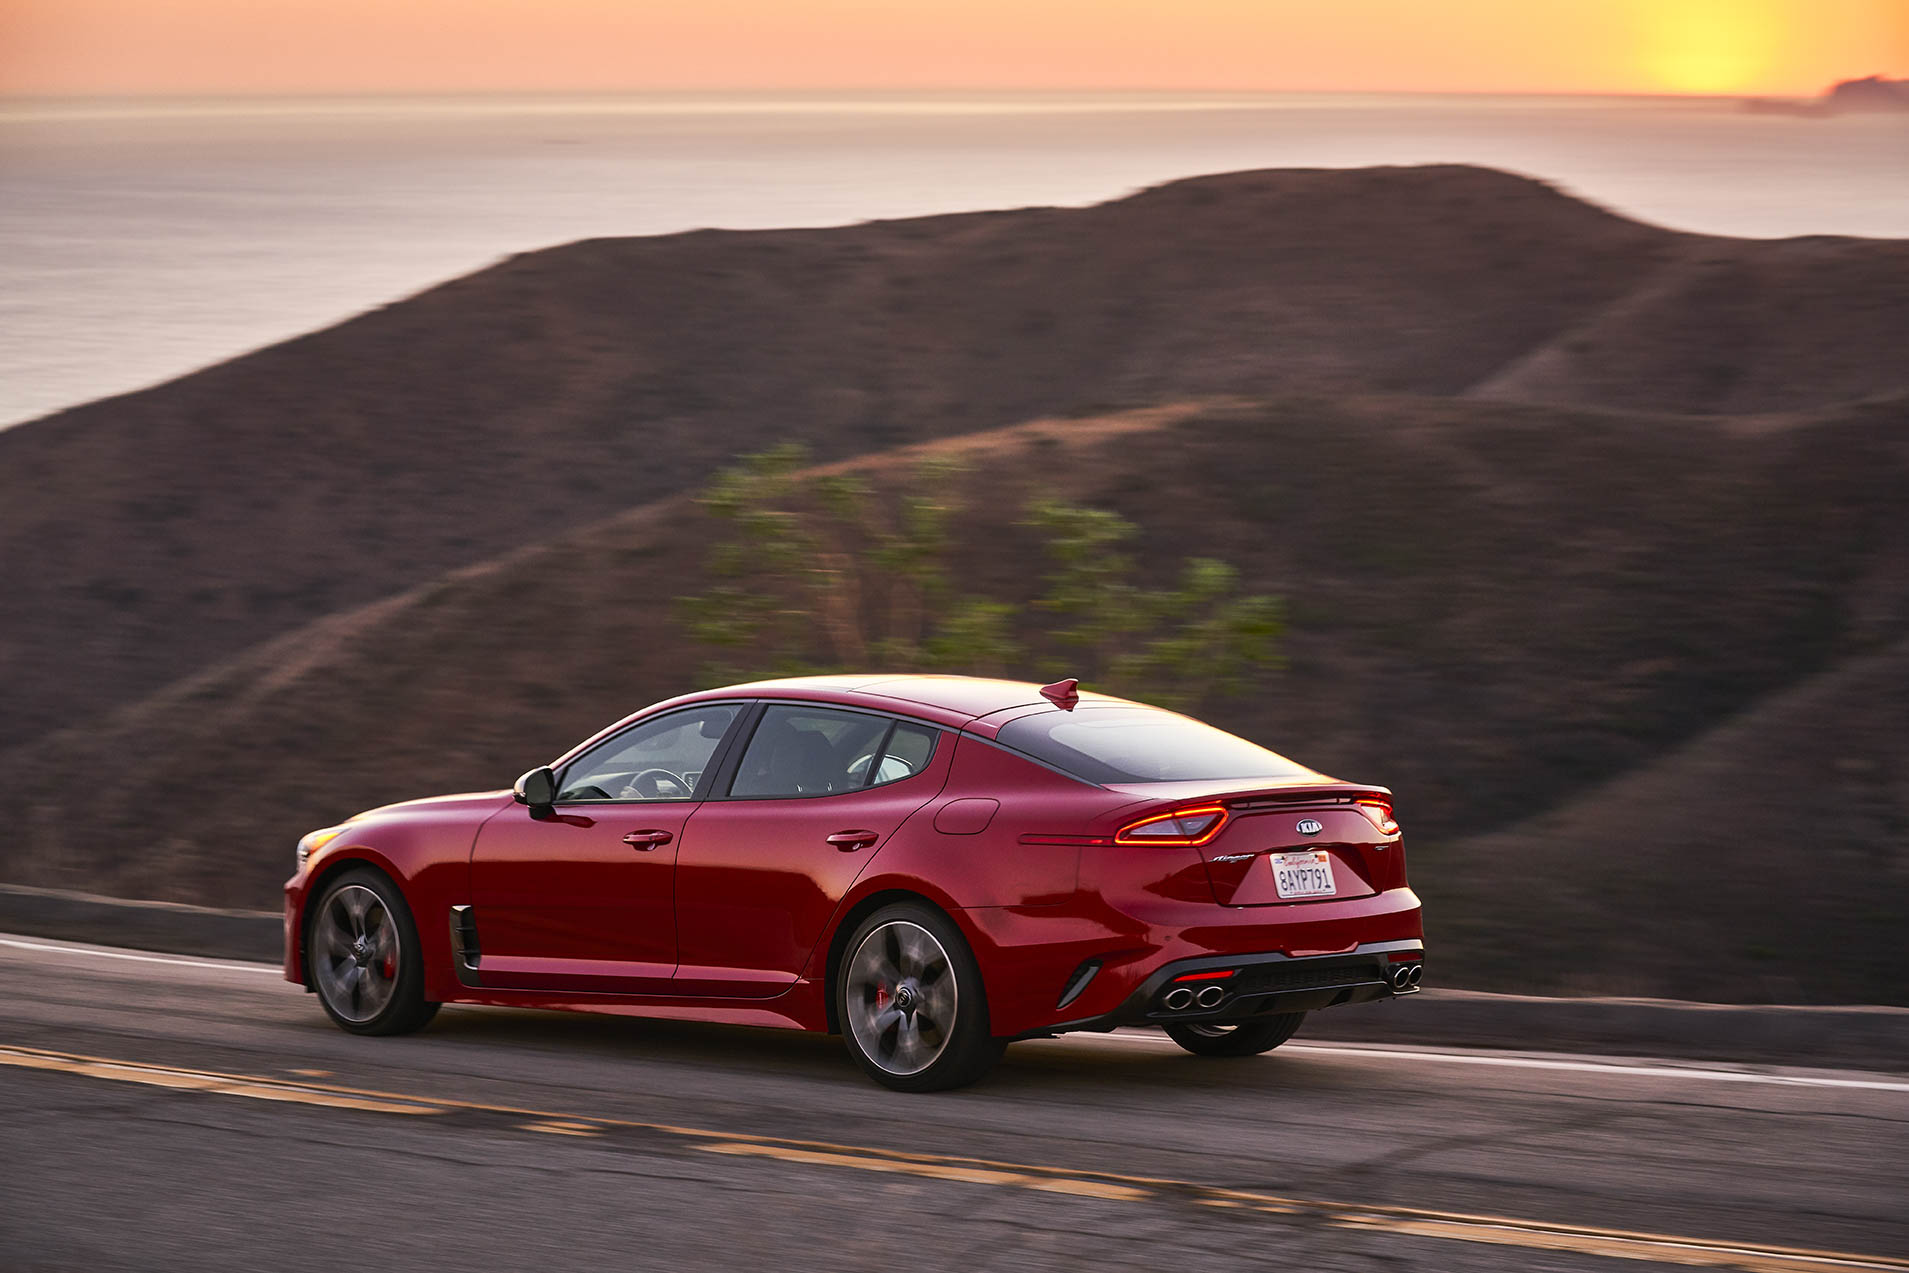 Kia came to America as a budget brand peddling basic transport. But people can't deny (can they?) that the Stinger has real swagger and legit performance.